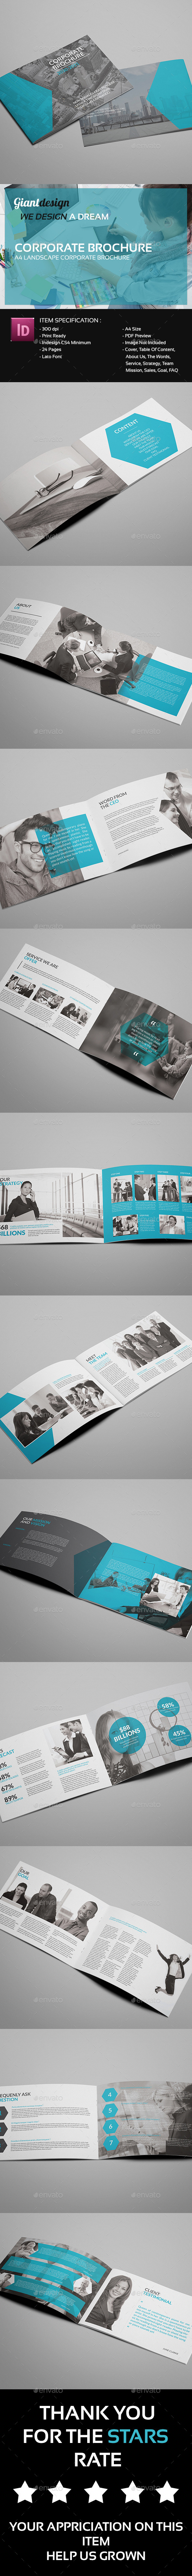 GraphicRiver Corporate Brochure 10002192